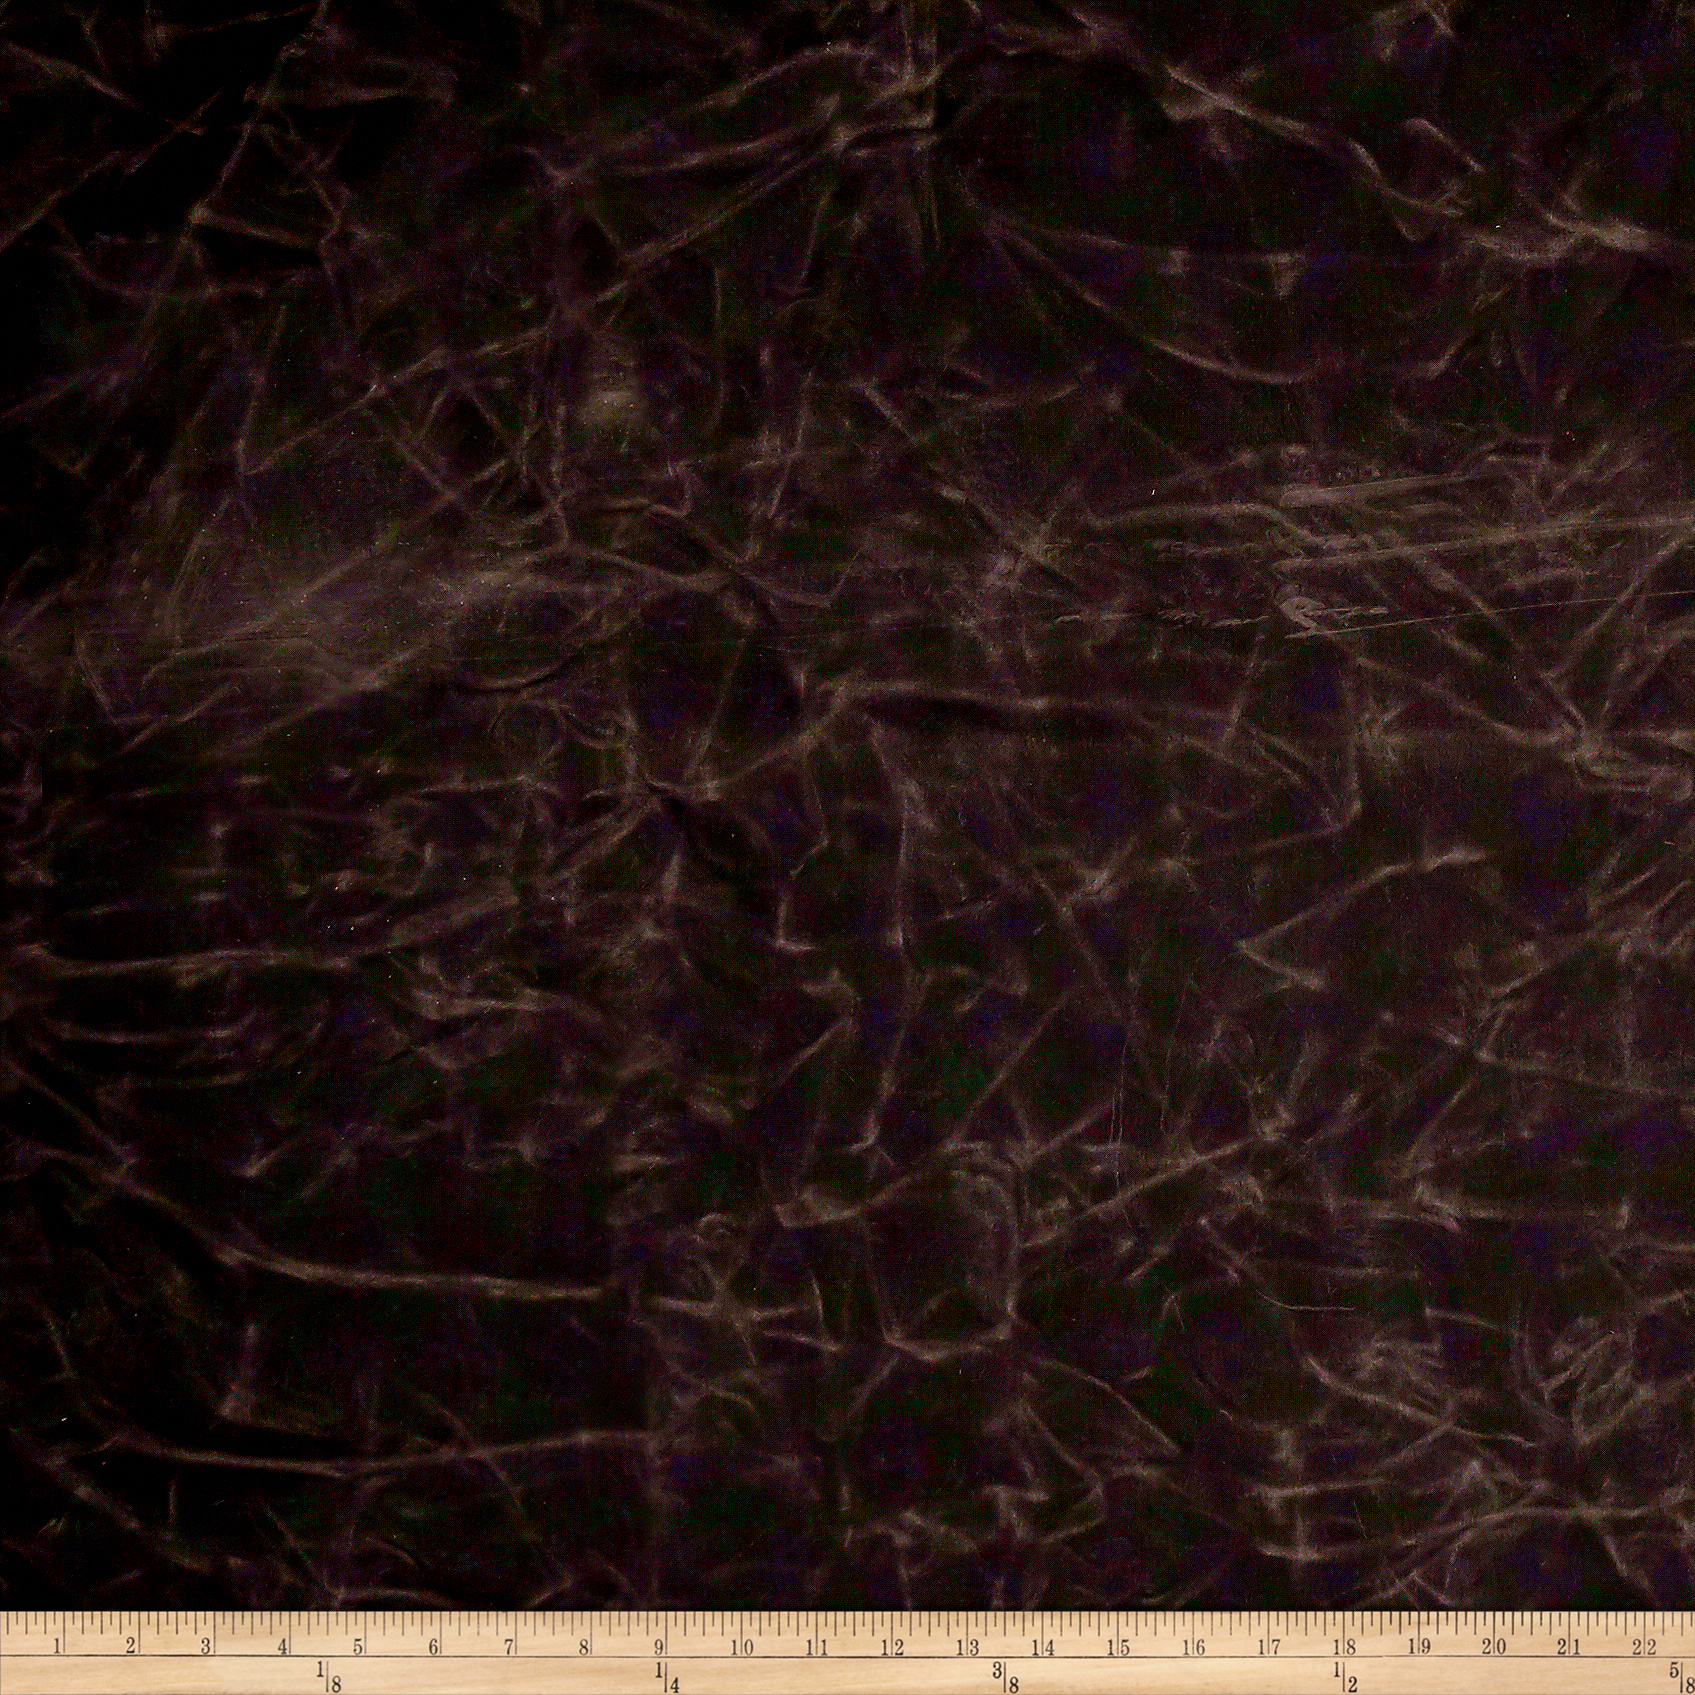 137_oz_Waxed_Army_Duck_Canvas_Chocolate_Brown_Fabric